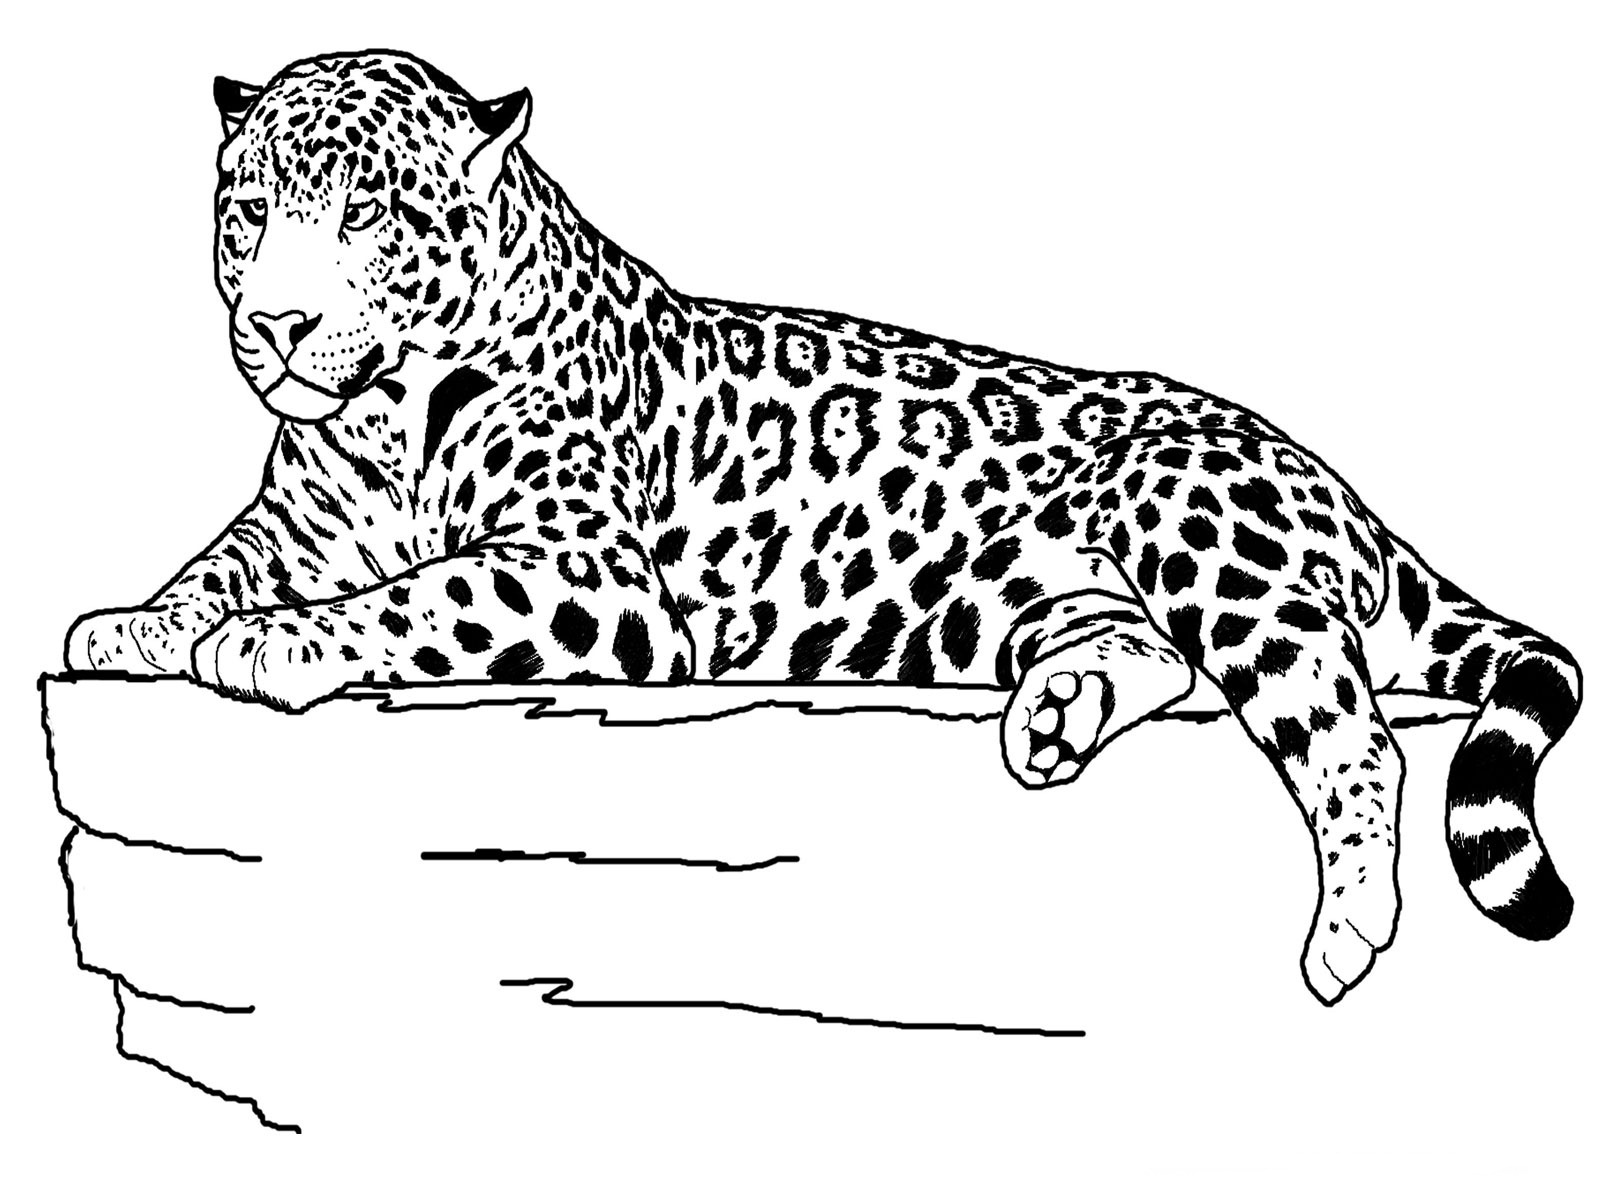 free printable cheetah coloring pages for kids. Black Bedroom Furniture Sets. Home Design Ideas